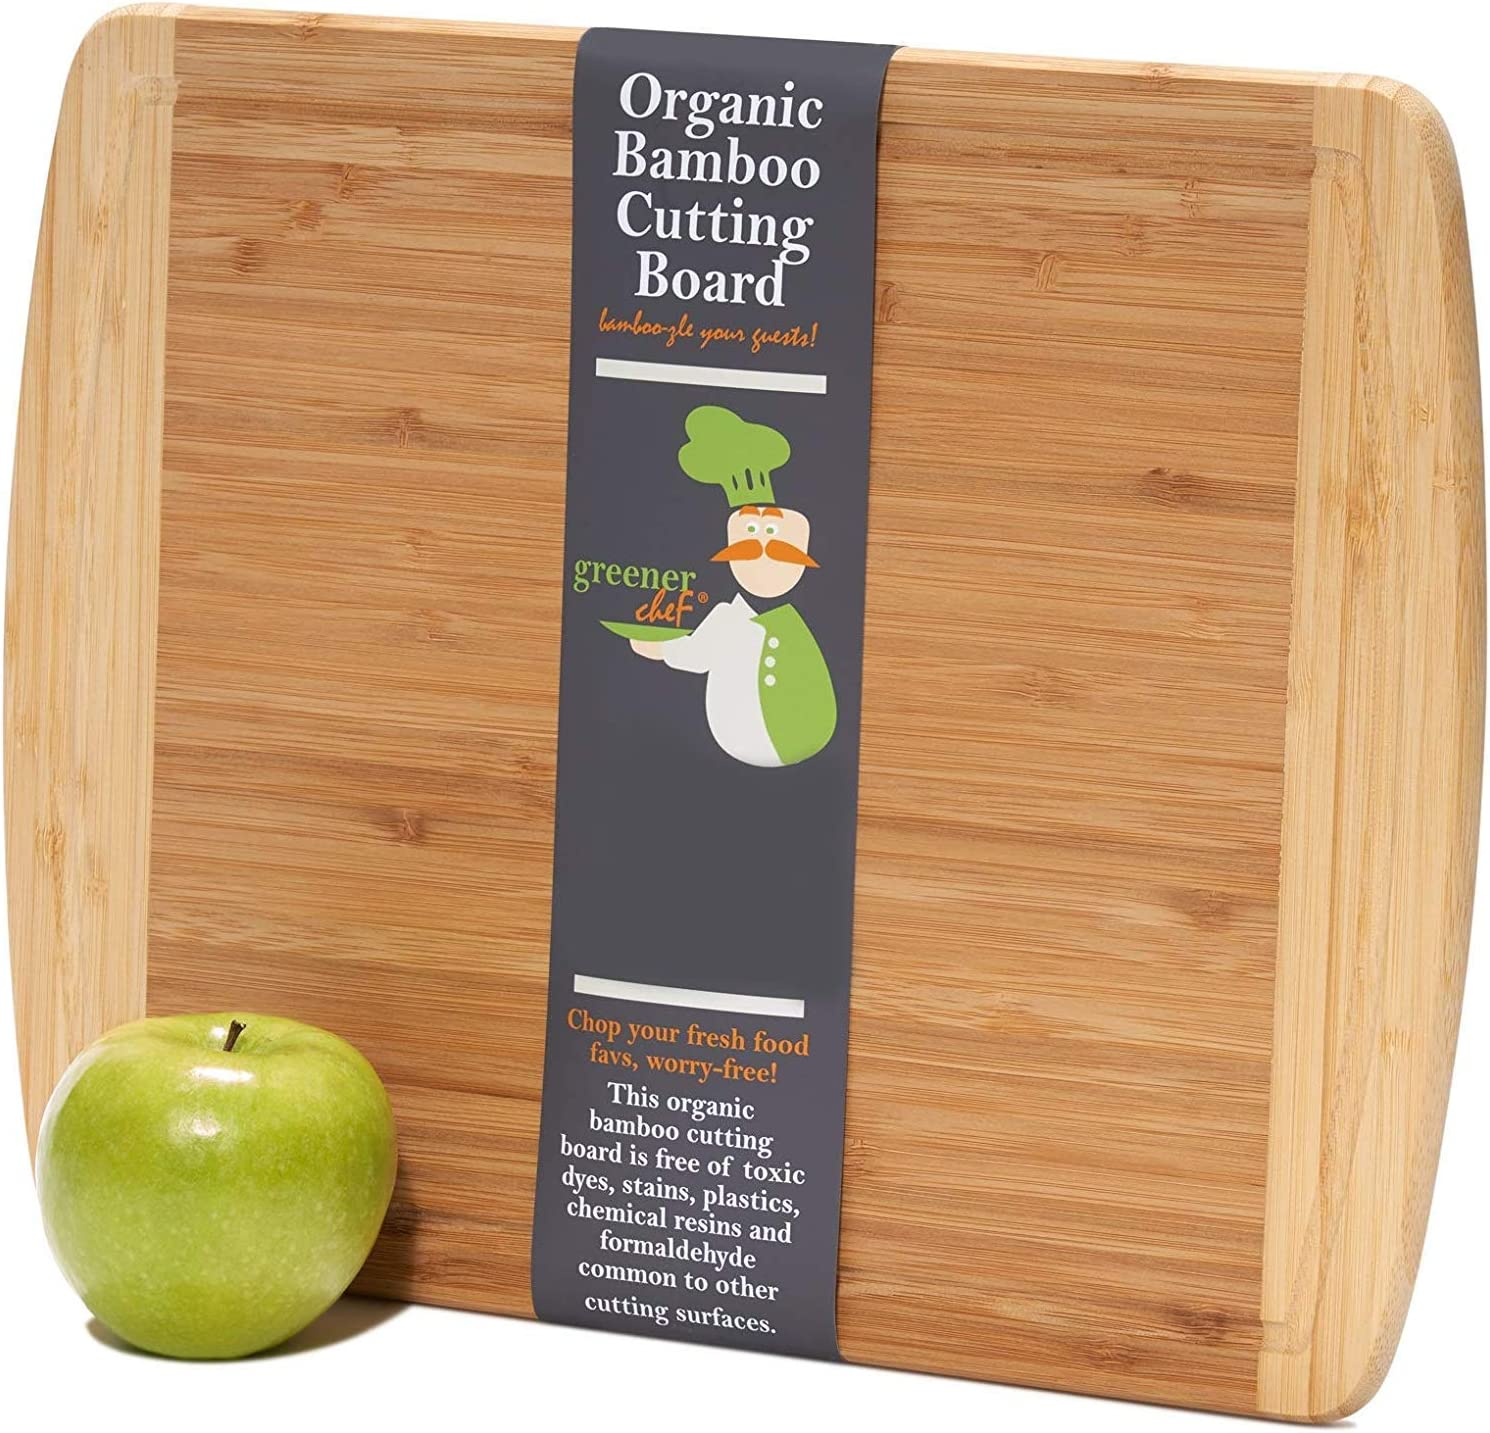 Medium-Large Wood Cutting Board : 14.5 x 11.5 Inches - Lifetime Replacement Bamboo Cutting Boards for Kitchen - Just the Right Size Wooden Chopping Board/Butcher Block